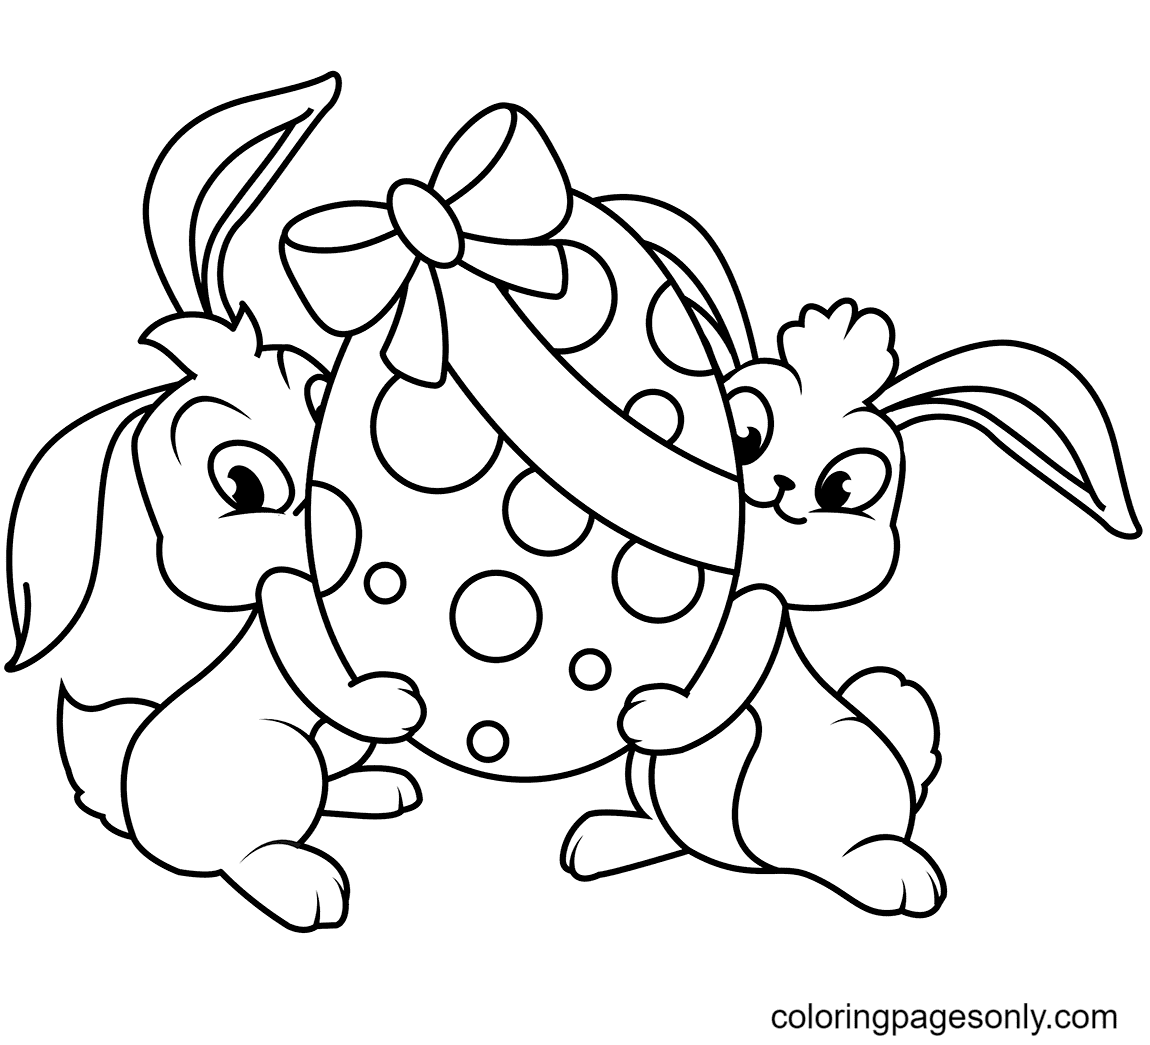 Two Easter Bunnies with Egg Coloring Page